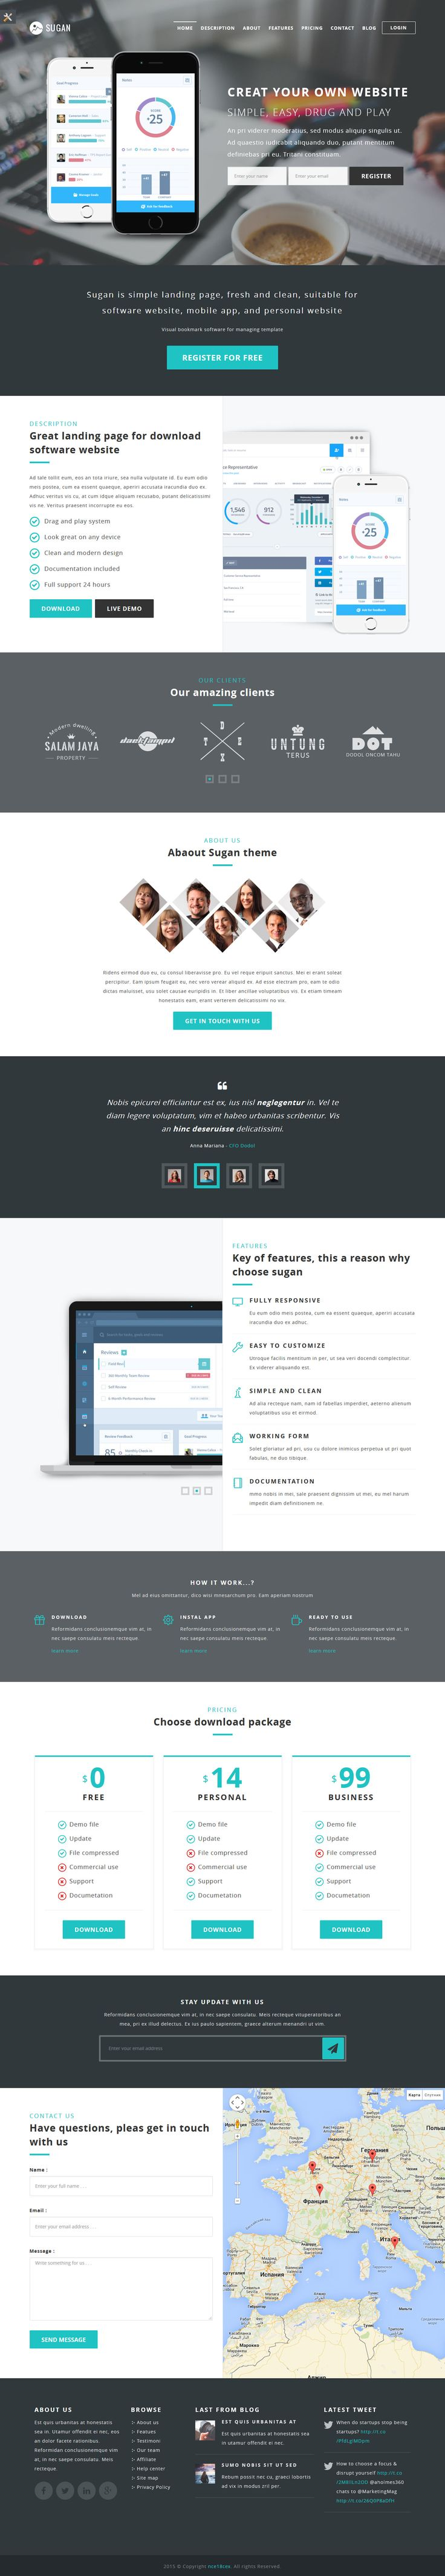 Sugan modern software landing page Template #website #webdesign Download: http://themeforest.net/item/sugan-modern-software-landing-page/12117484?ref=ksioks